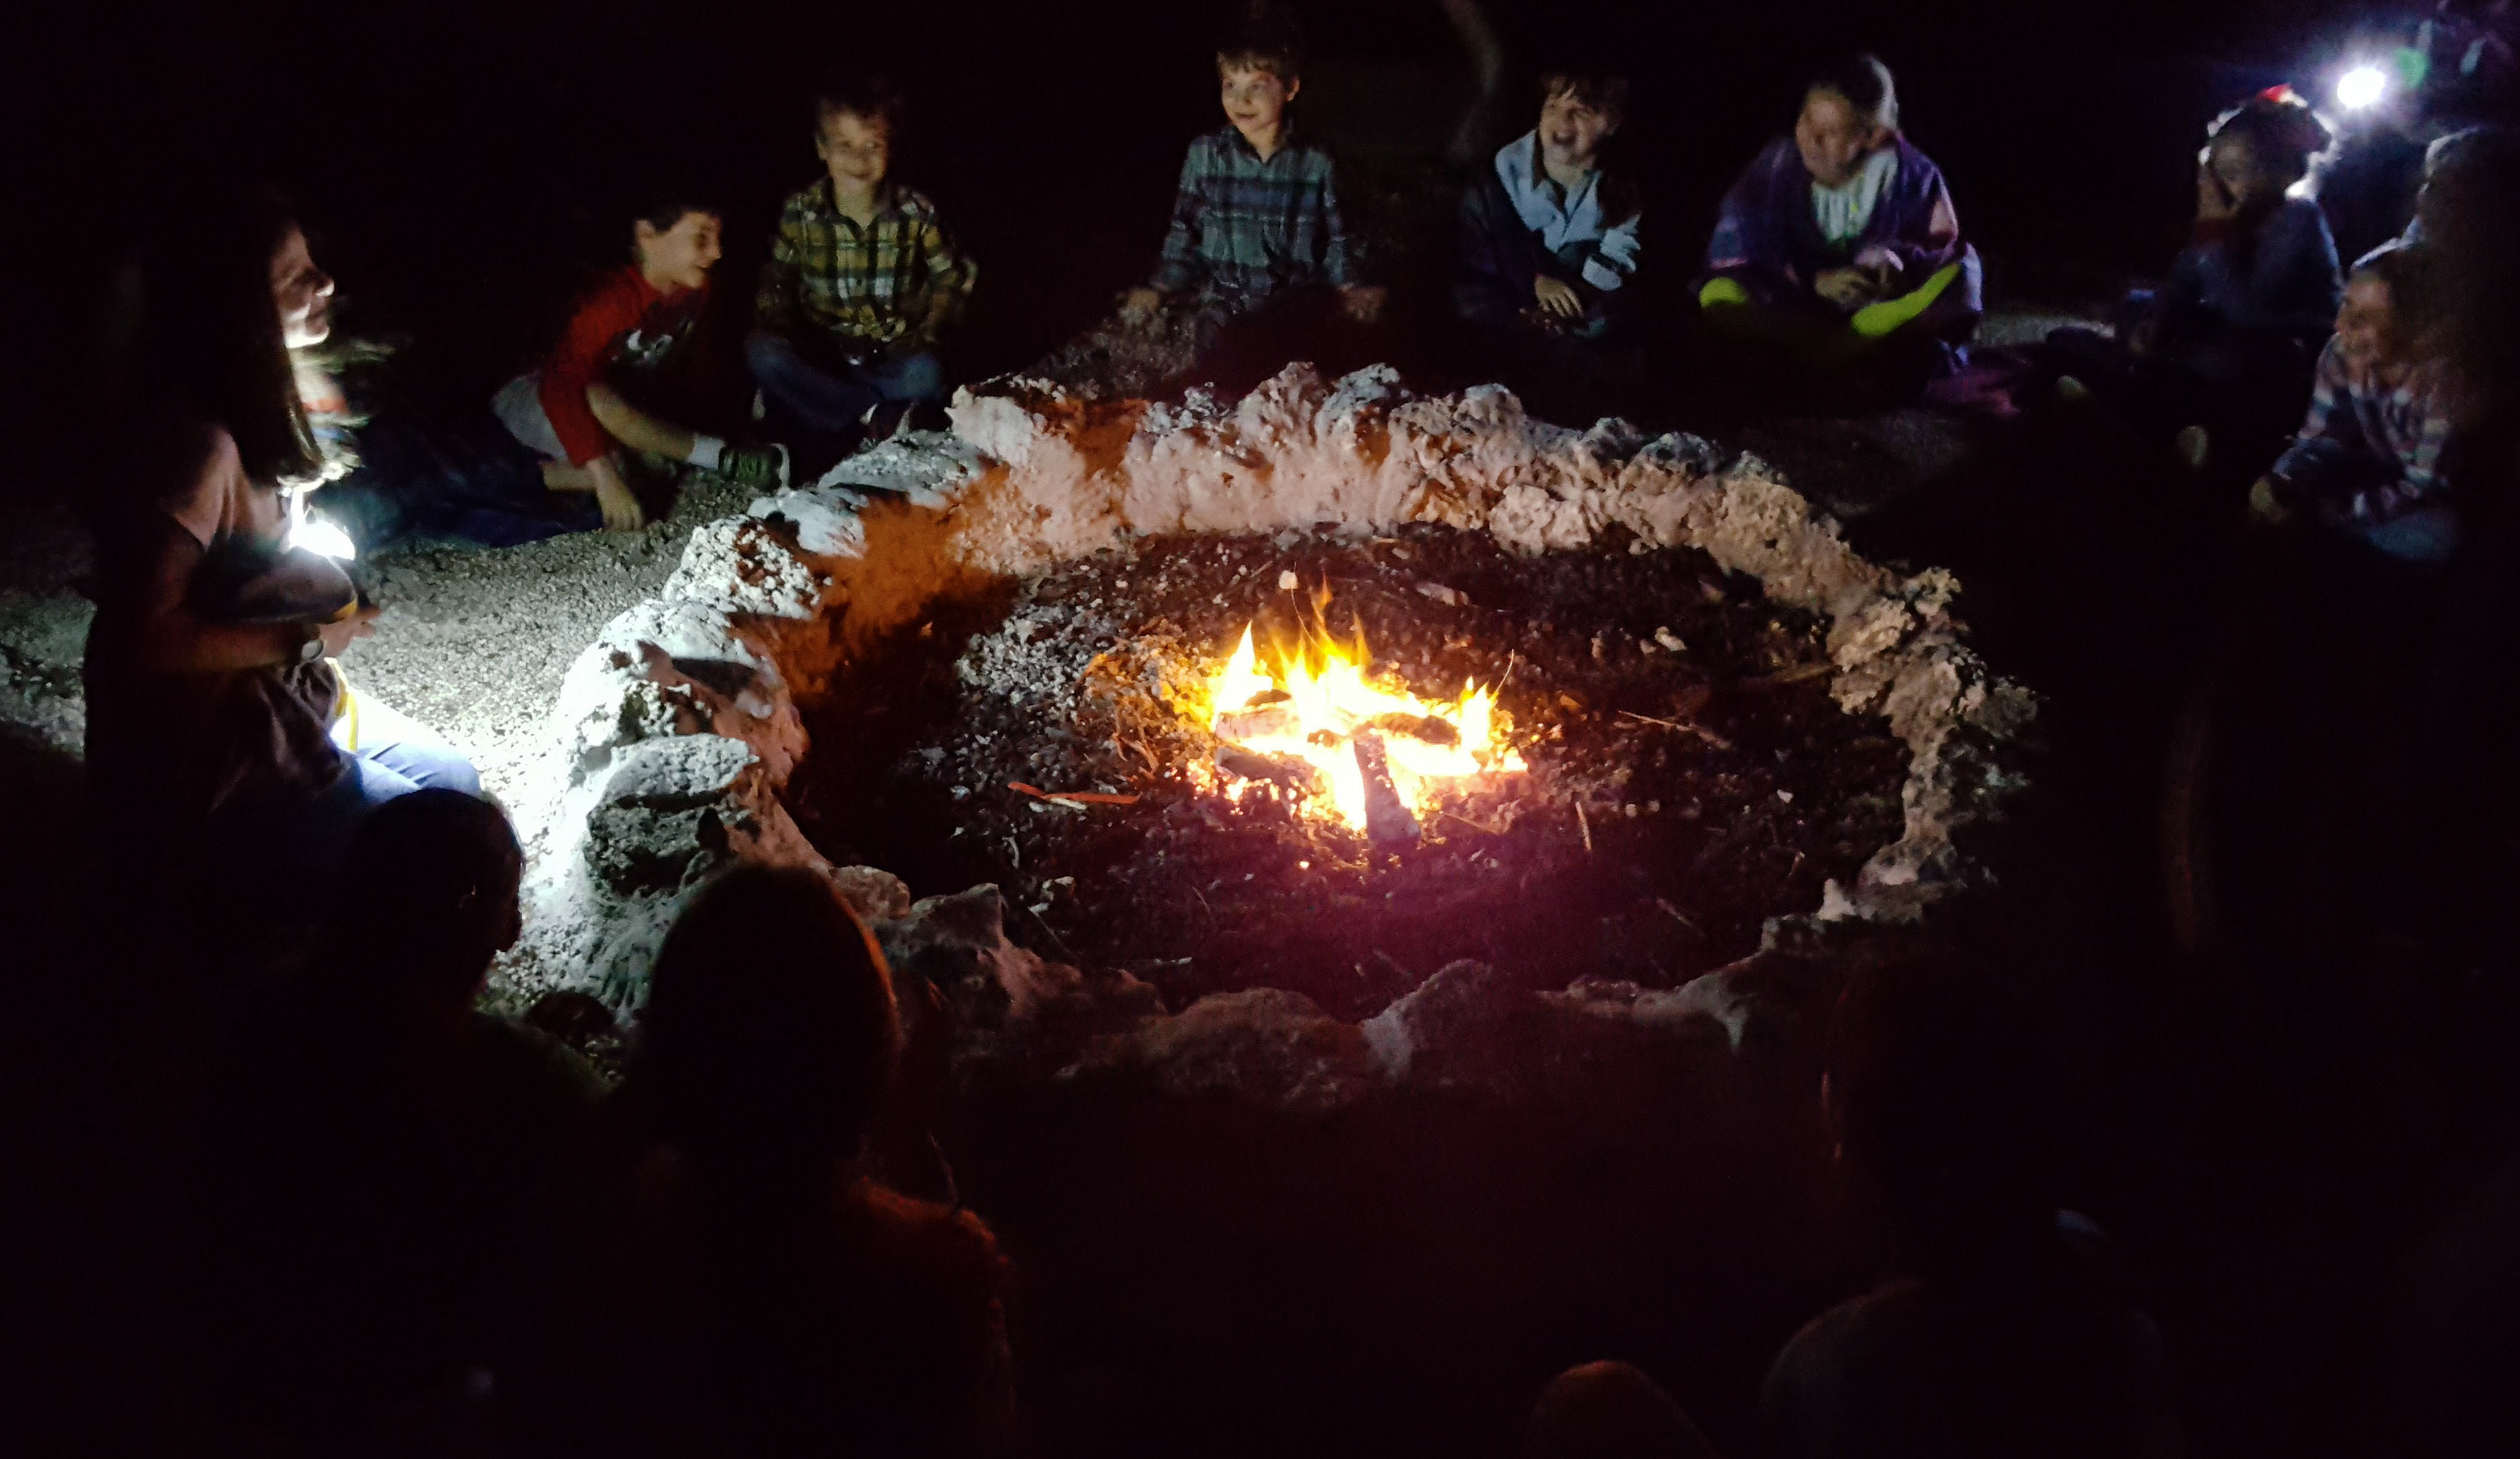 deering estate night hike and camp fire s'mores kids activities